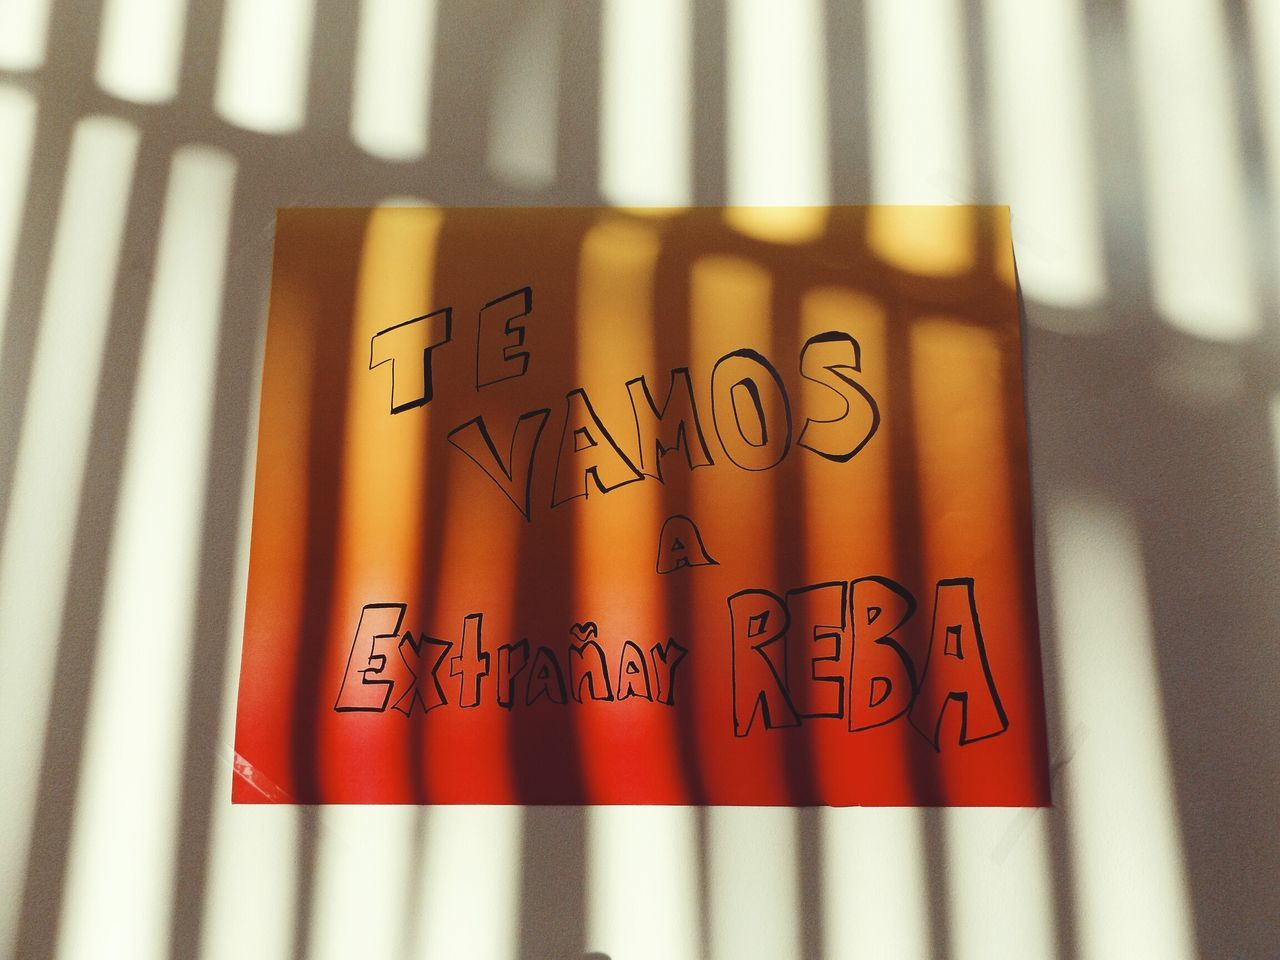 Te Vamos Goodbye Reba Interior Views Posters Ombre Ombre Art Red And Orange Red Orange Vintage Grunge Indie VSCO Going Away Party Wall Decoration Wall Art Showcase March Faded Beauty Faded Your Design Story TakeoverContrast Uniqueness Art Is Everywhere BYOPaper!